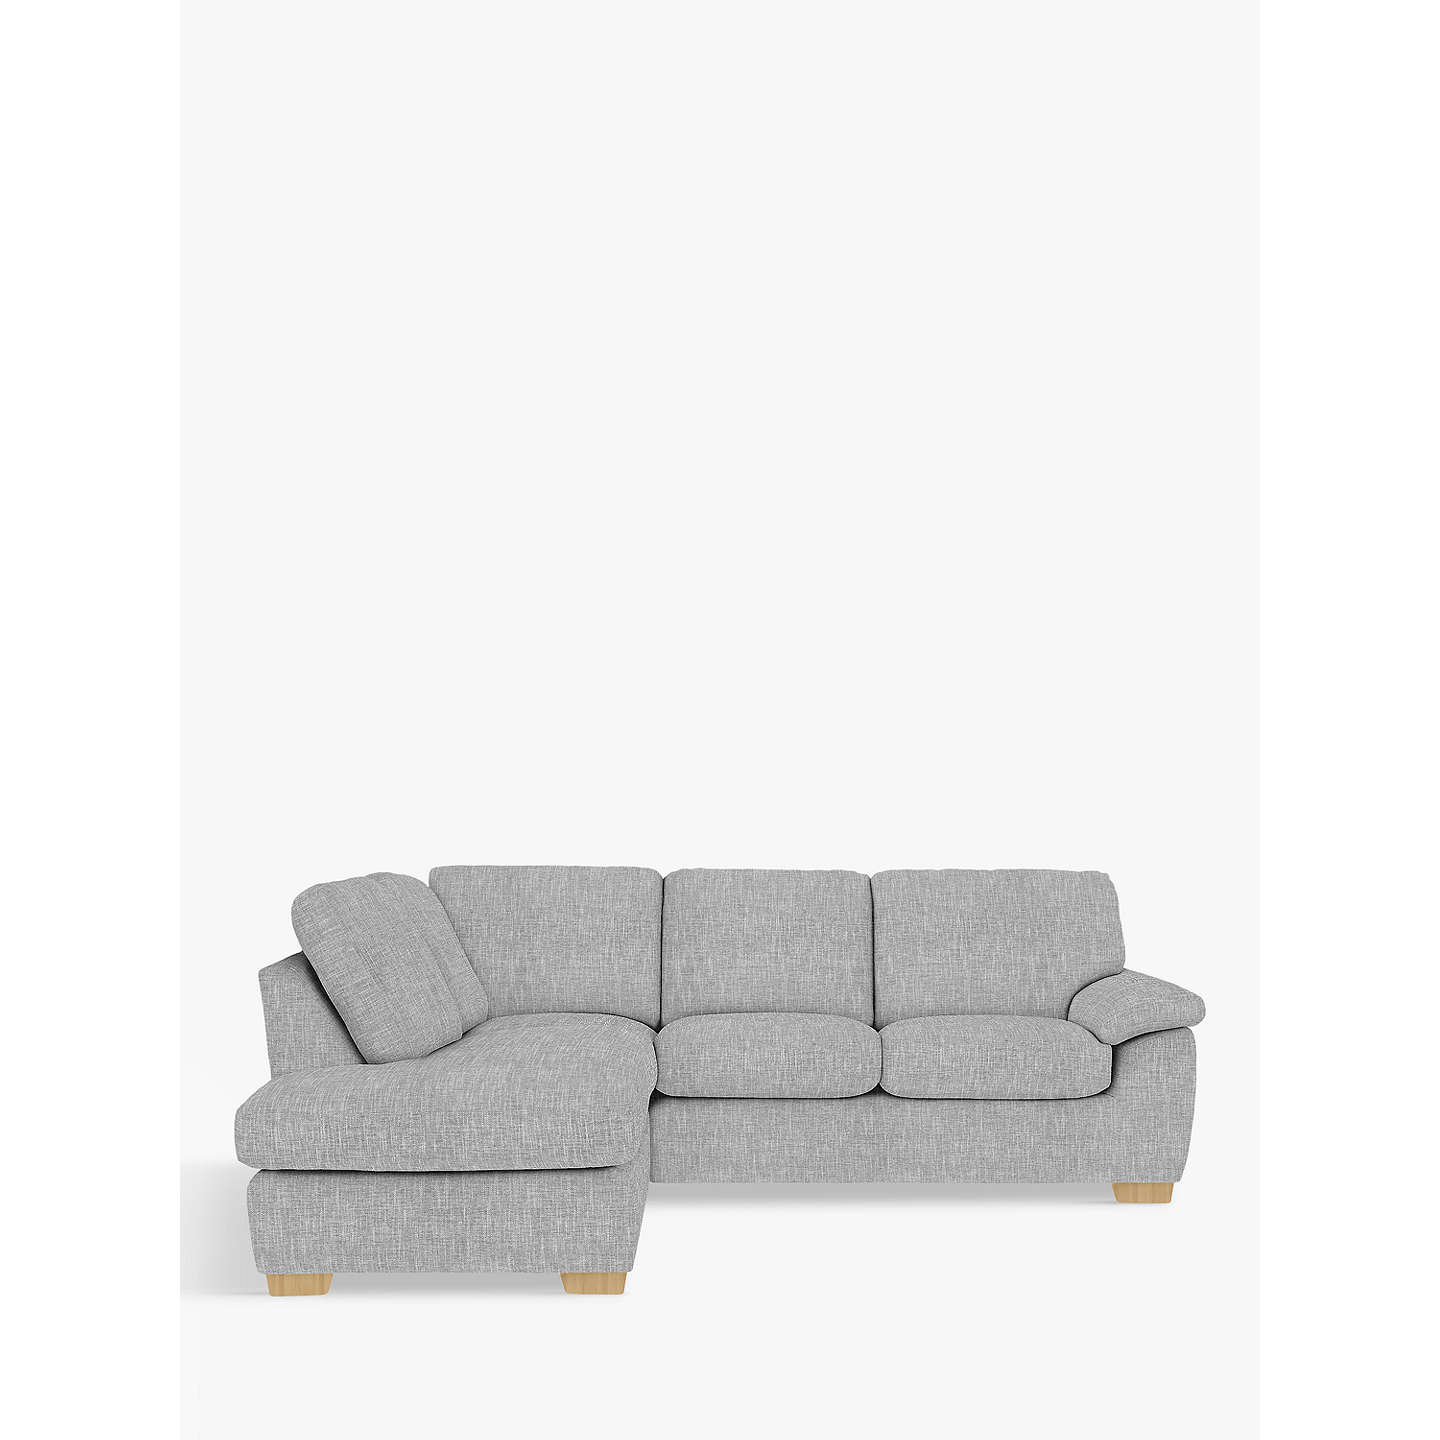 John Lewis Cooper Corner Sofa: John Lewis Camden LHF Corner End Chaise Unit, Light Leg At